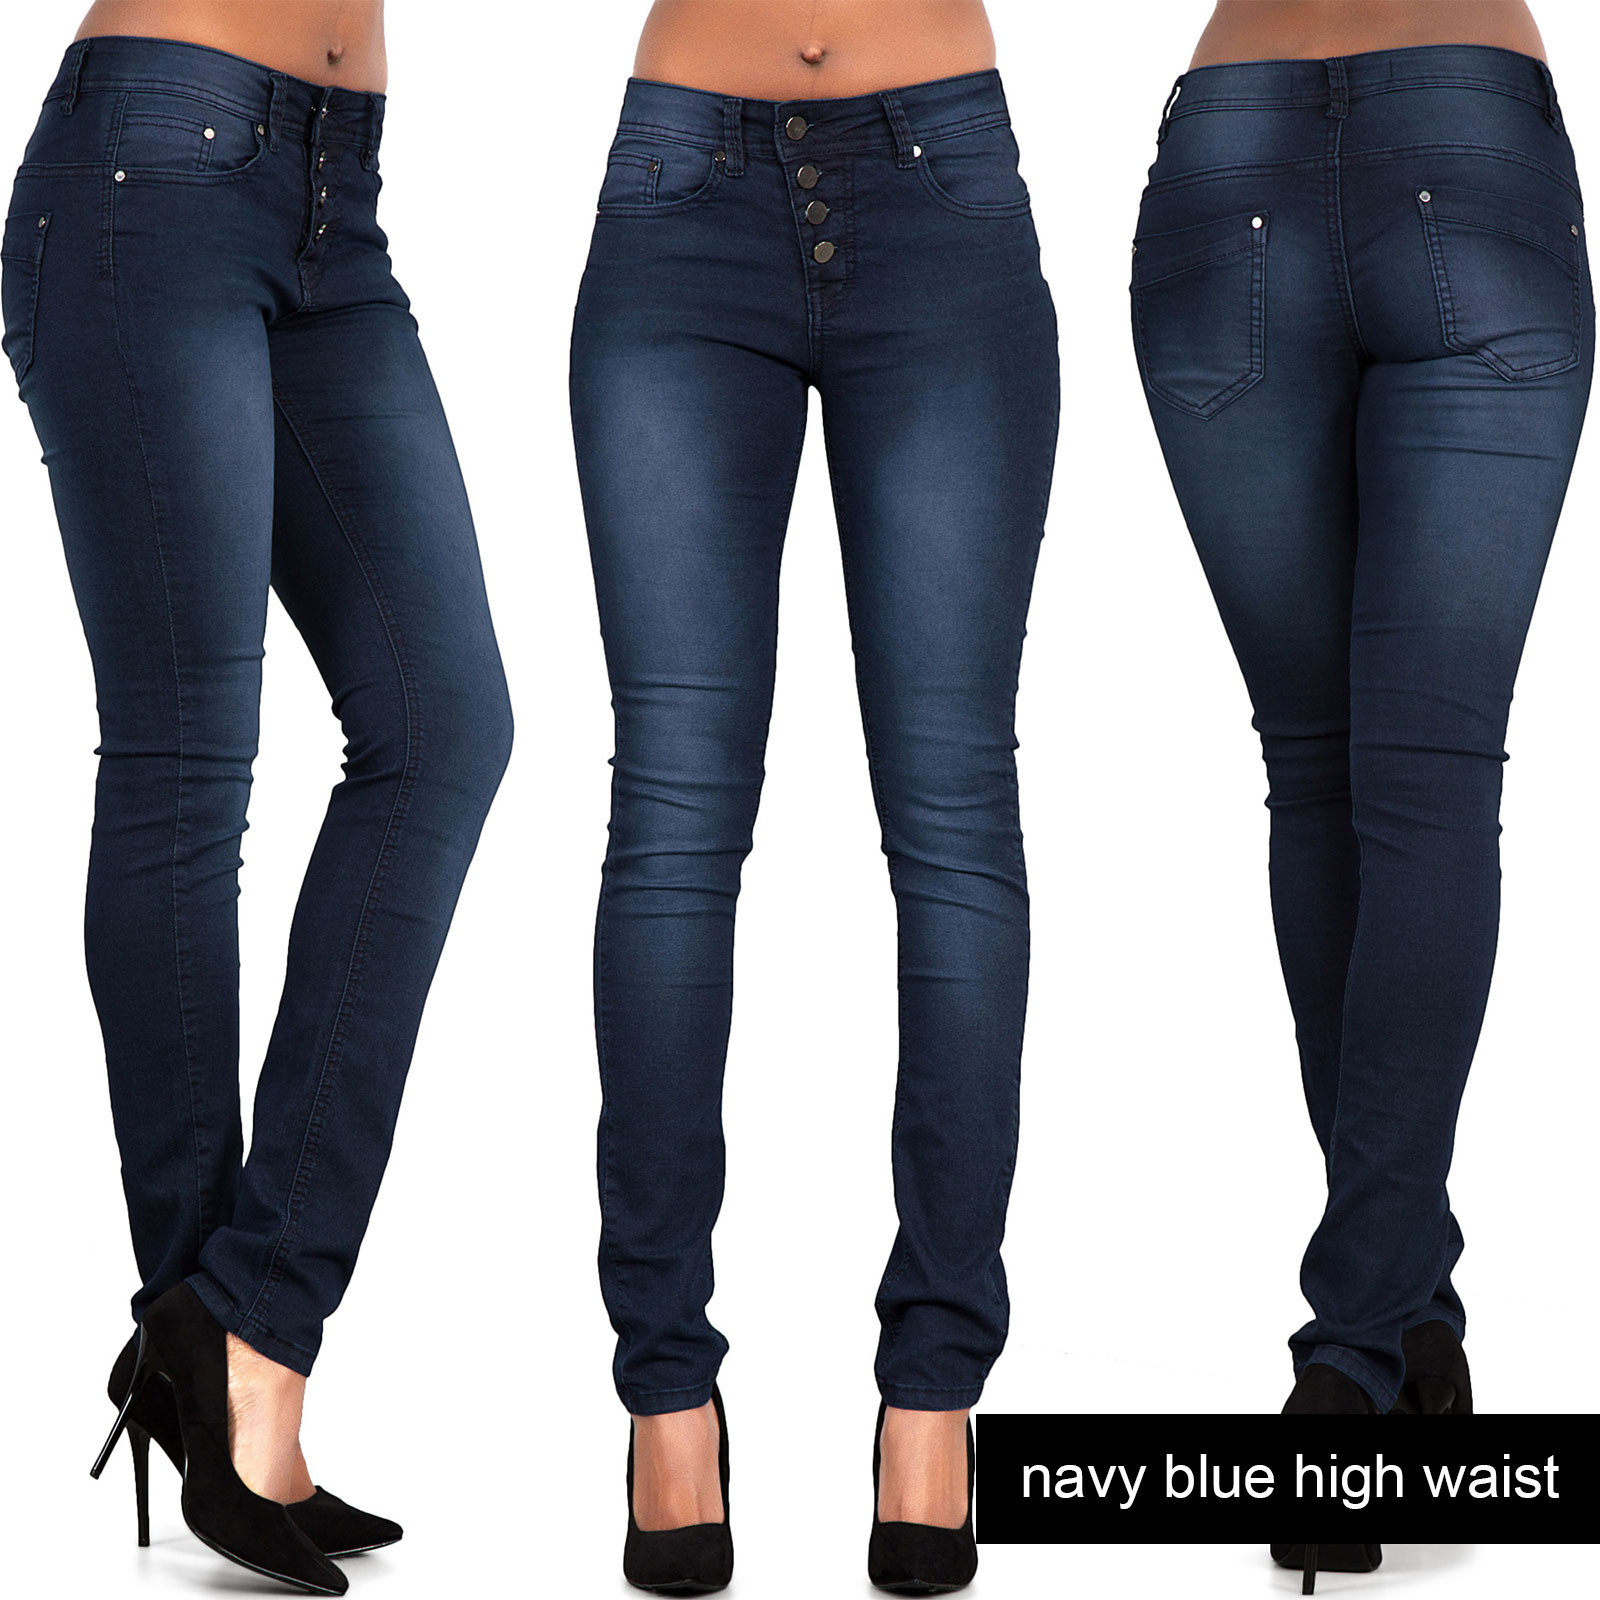 Womens Ladies High Waist Ripped Jeans Stretch Denim Plus Size 14 ...